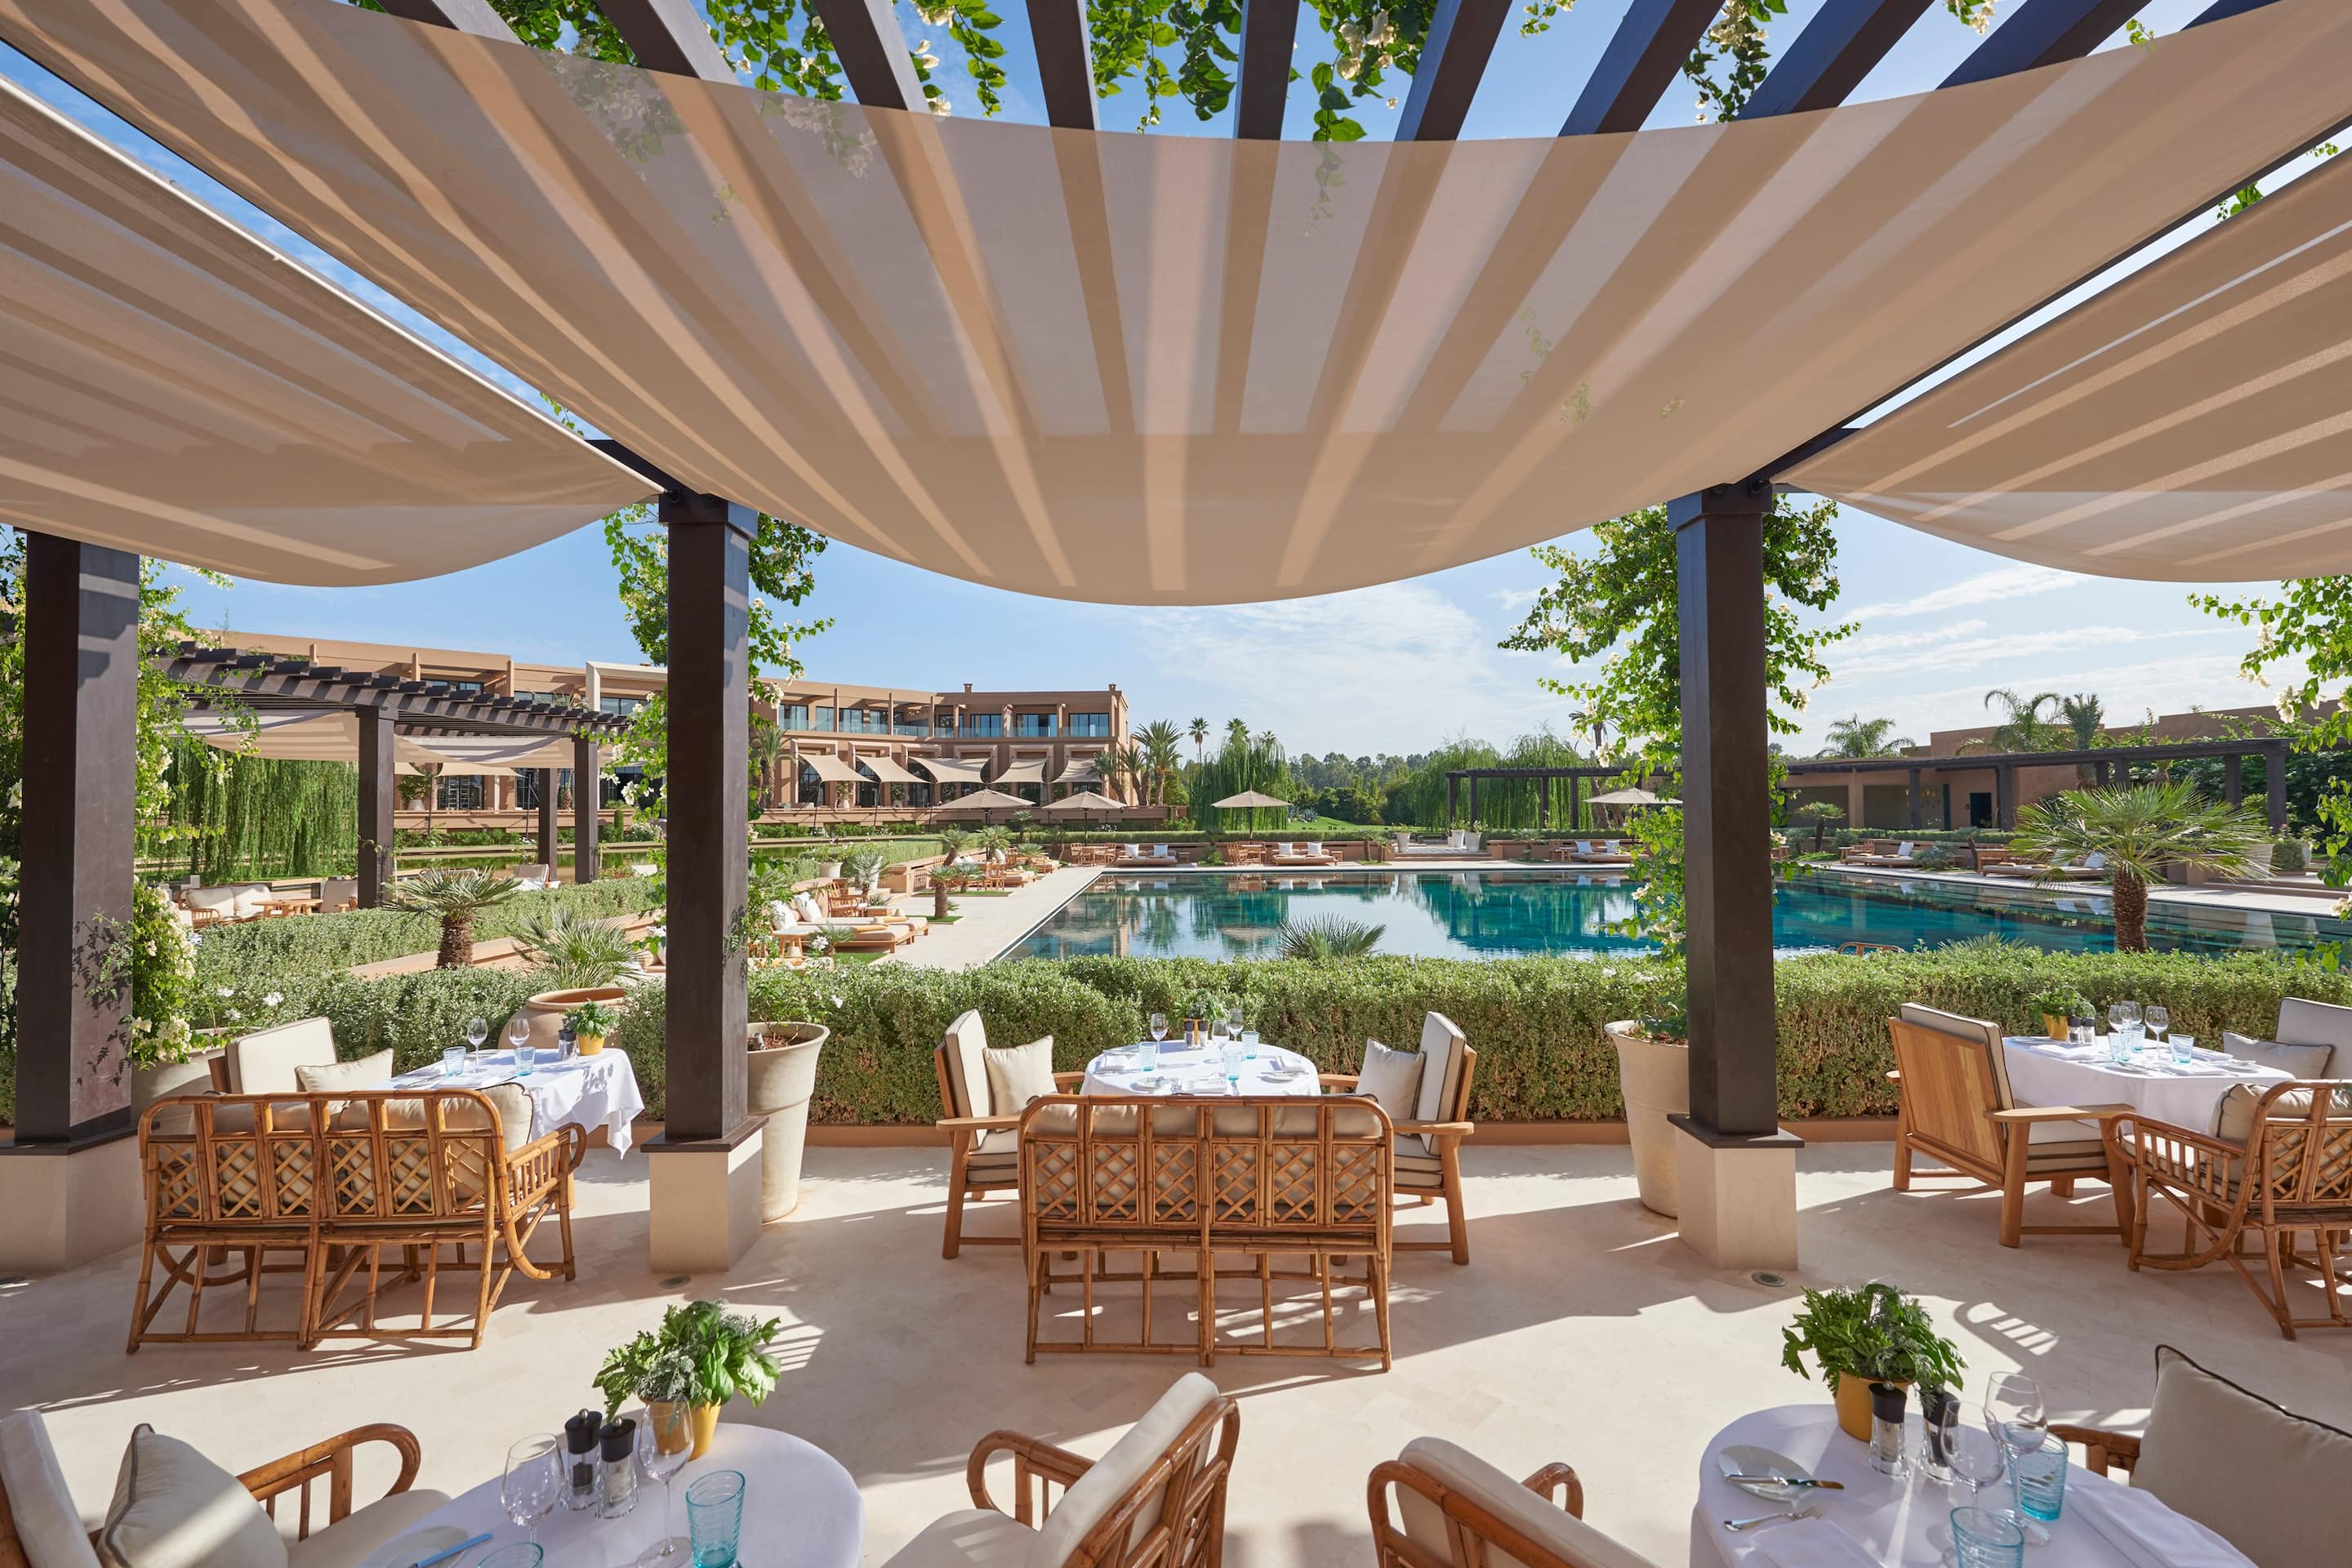 Tables and sun loungers surround the pool at Mandarin Oriental, Marrakech